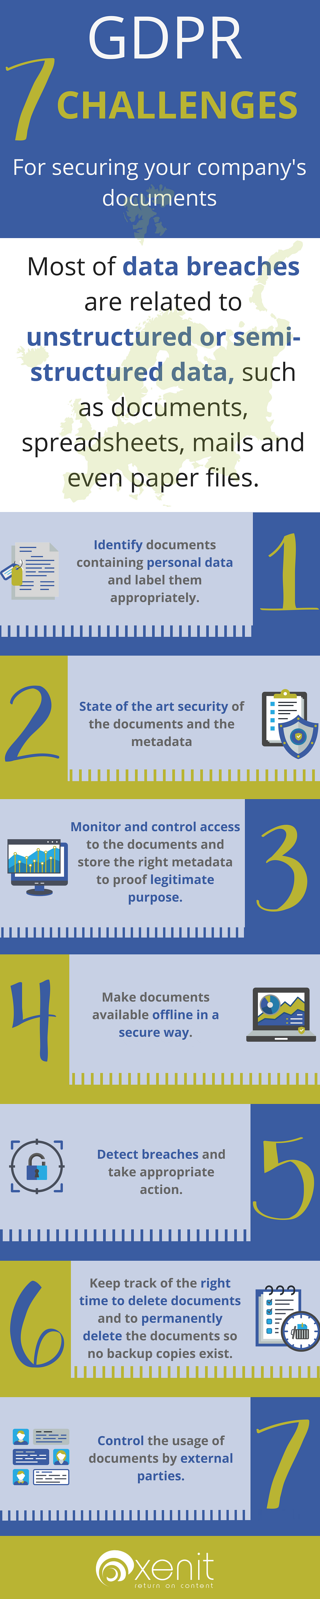 GDPR 7 Challenges Infographic-1.png